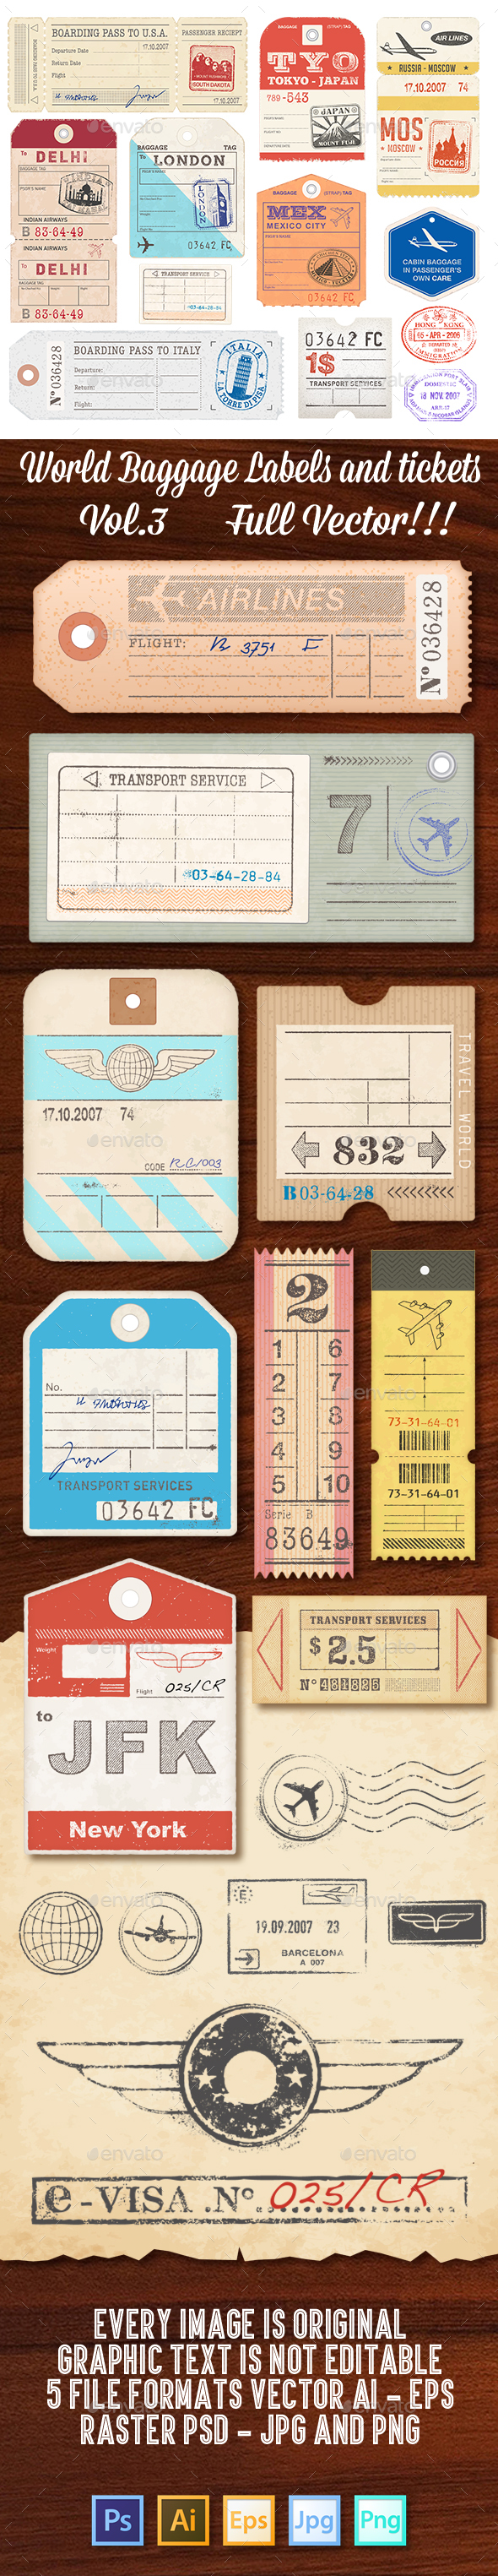 World Luggage Tags Set 3